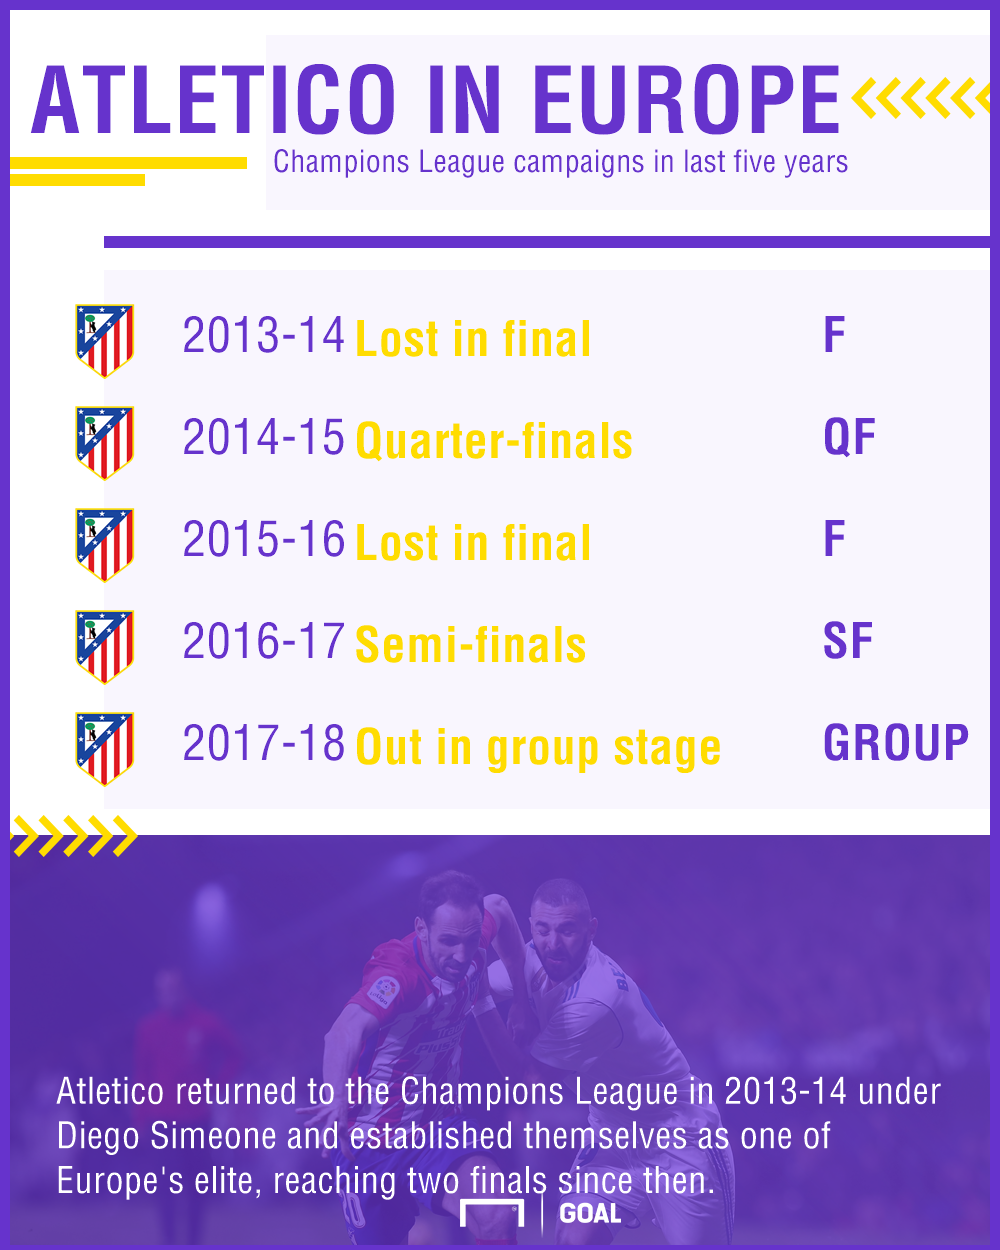 Atletico in Europe graphic